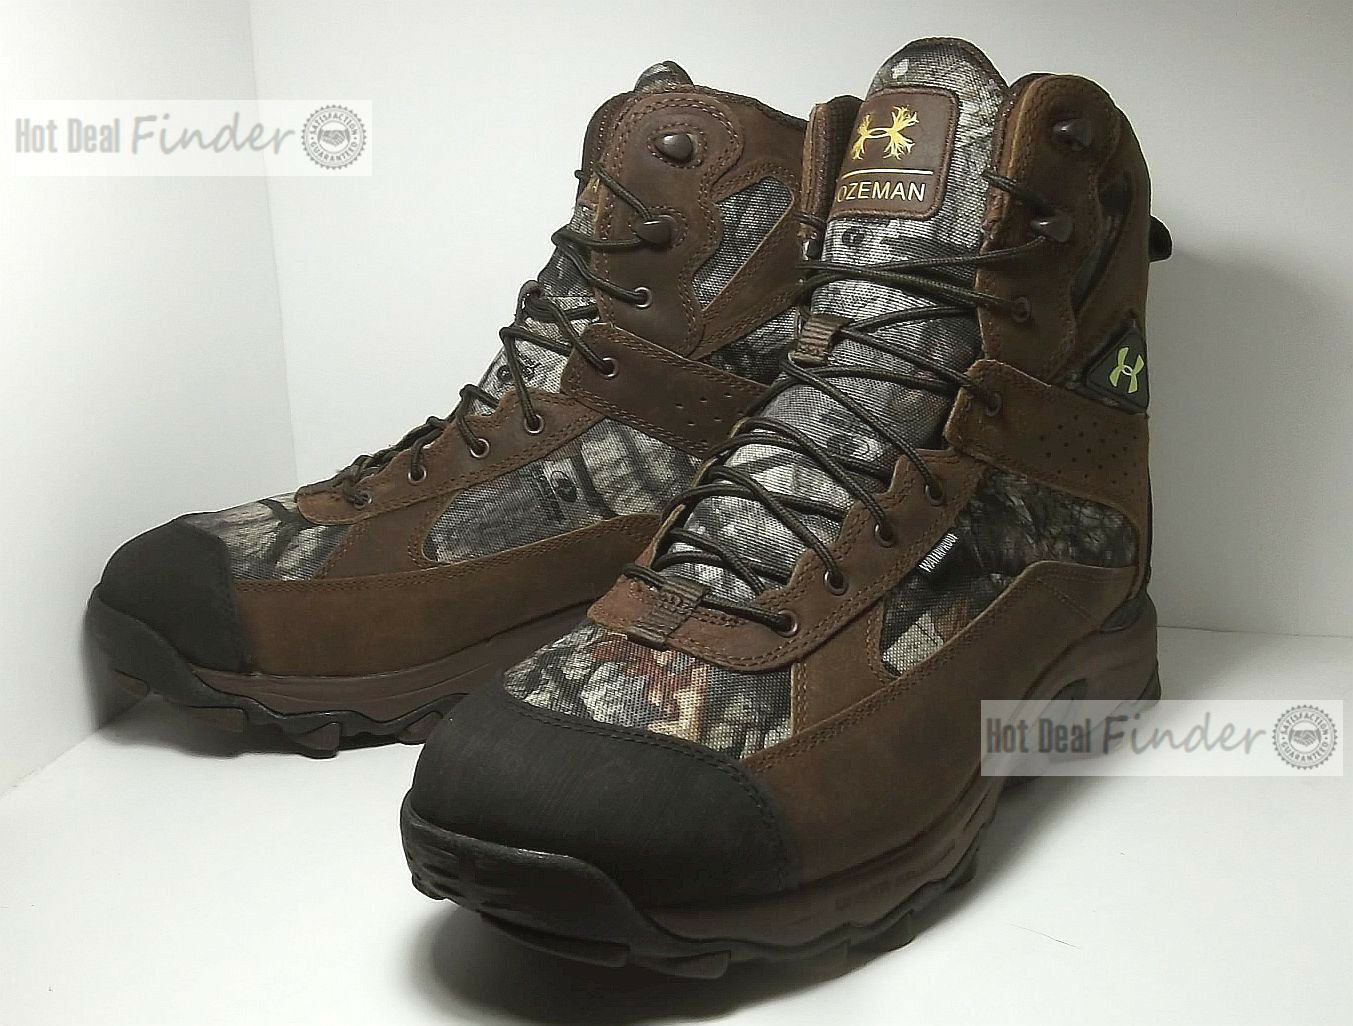 NEW UNDER ARMOUR BOZEMAN = Größe 12 = WATERPROOF CAMO herren Stiefel 1262055-905